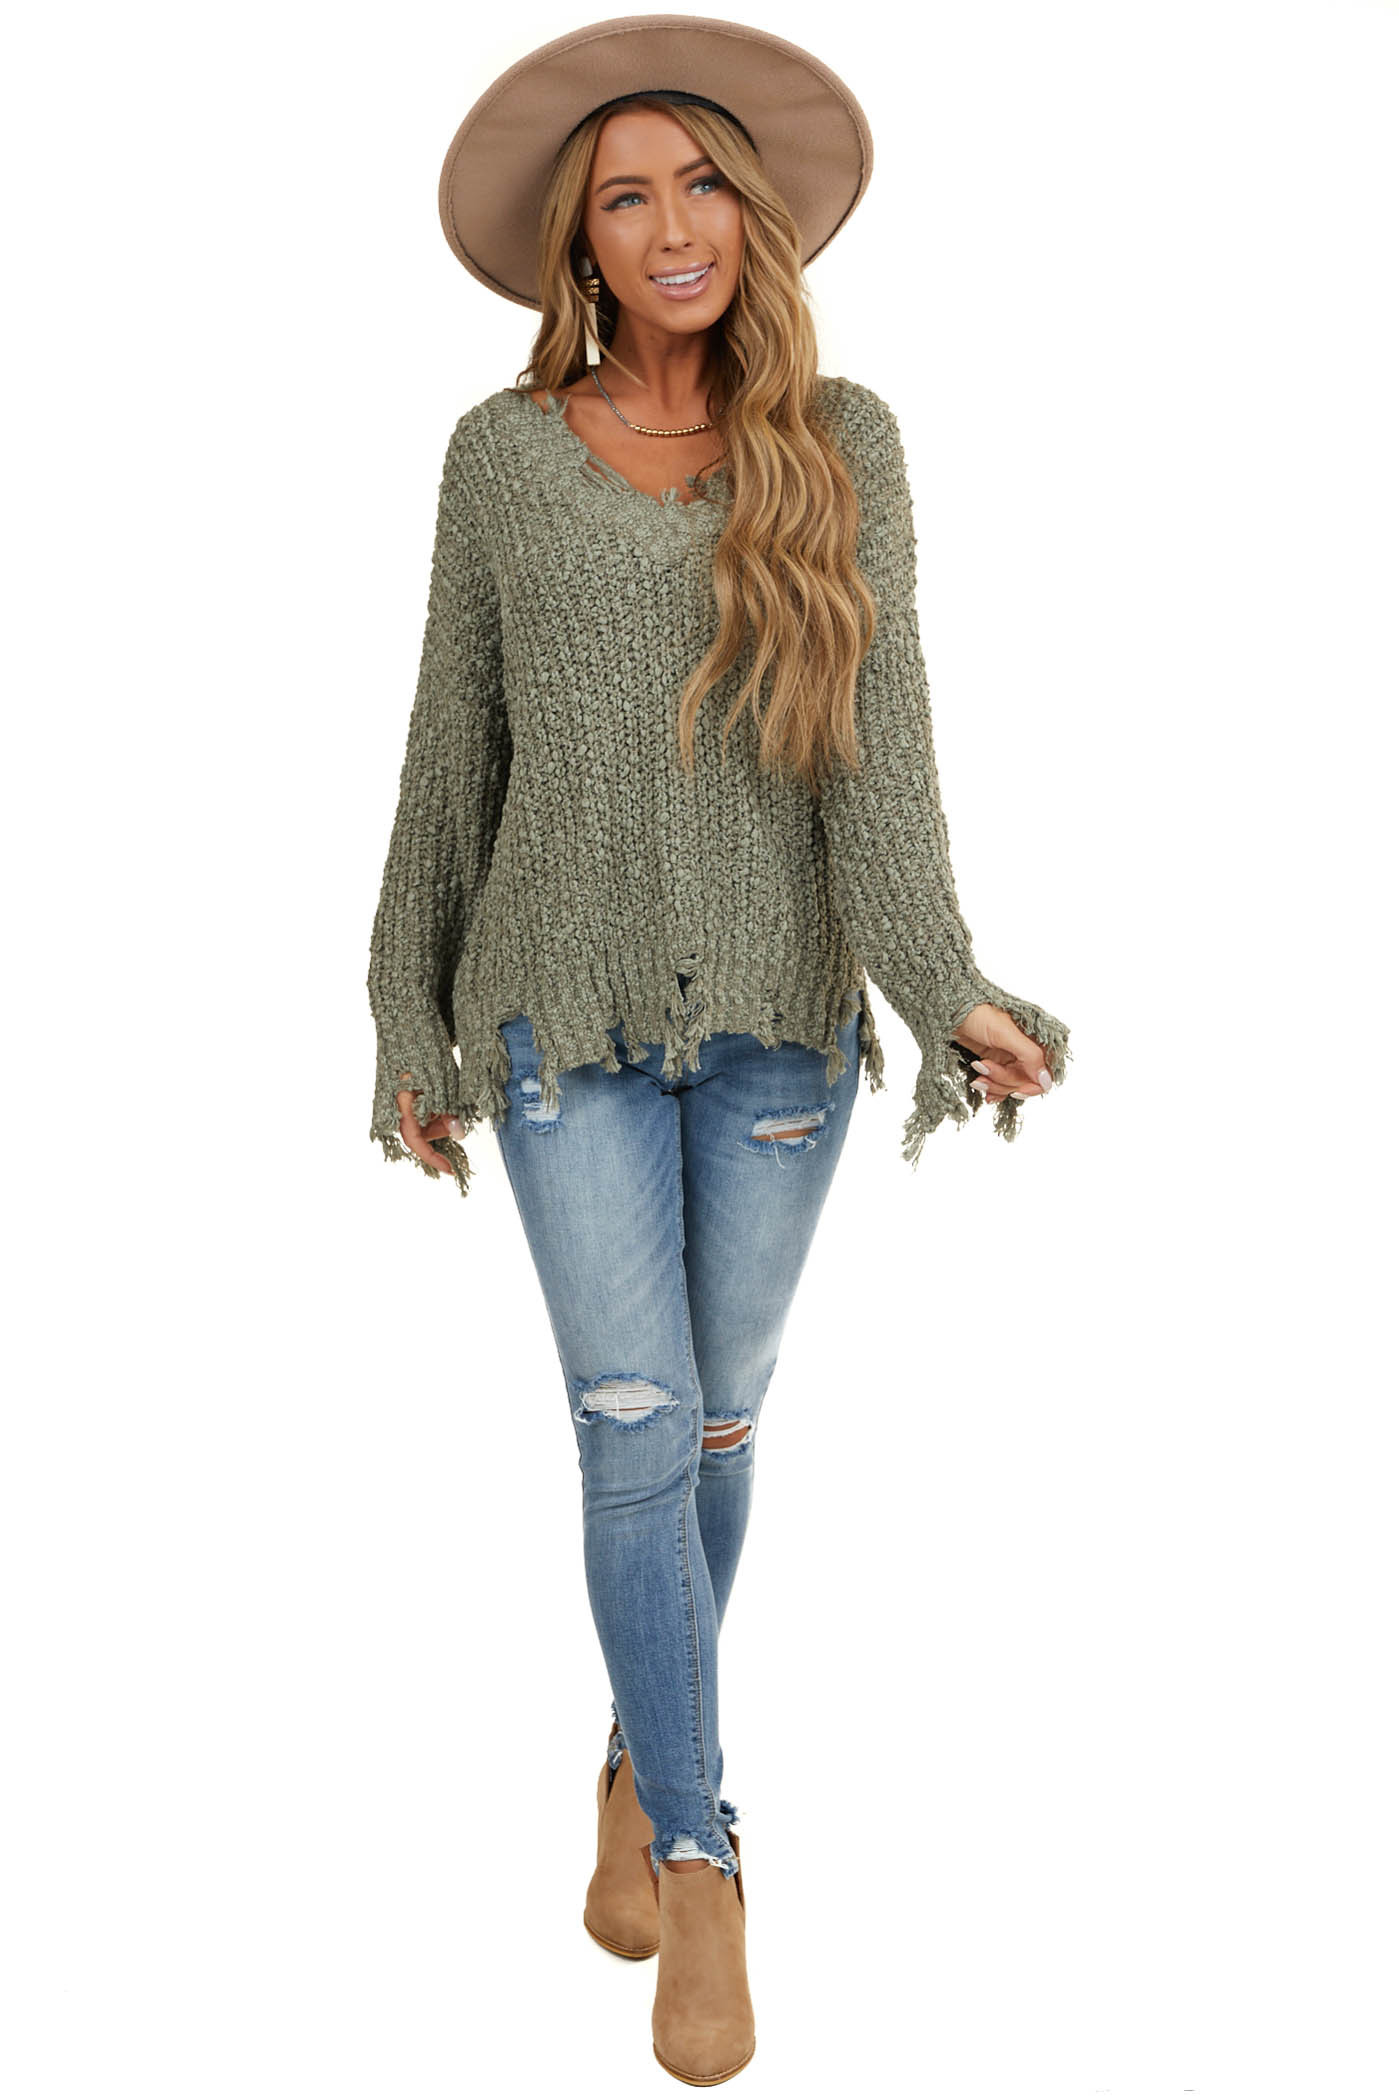 Moss Green Long Sleeve Popcorn Sweater with Distressed Hem